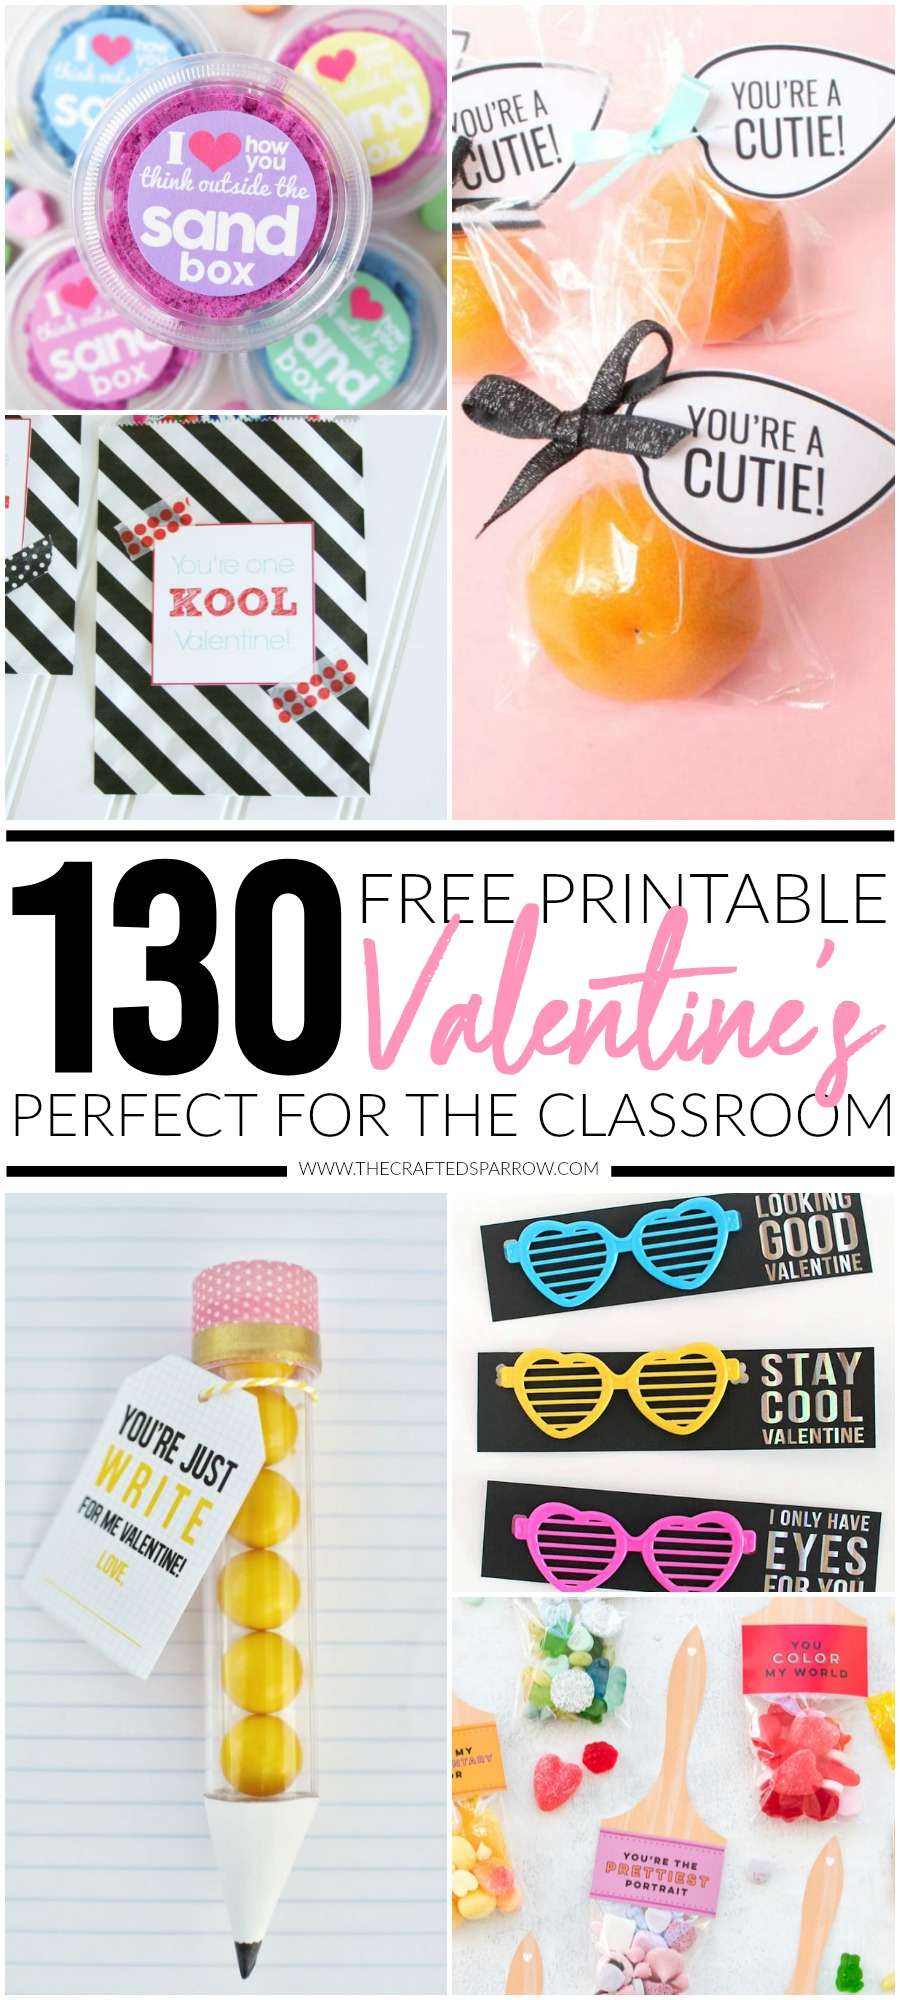 photo regarding Free Printable Valentines called 130 Free of charge Printable Valentines for The Clroom